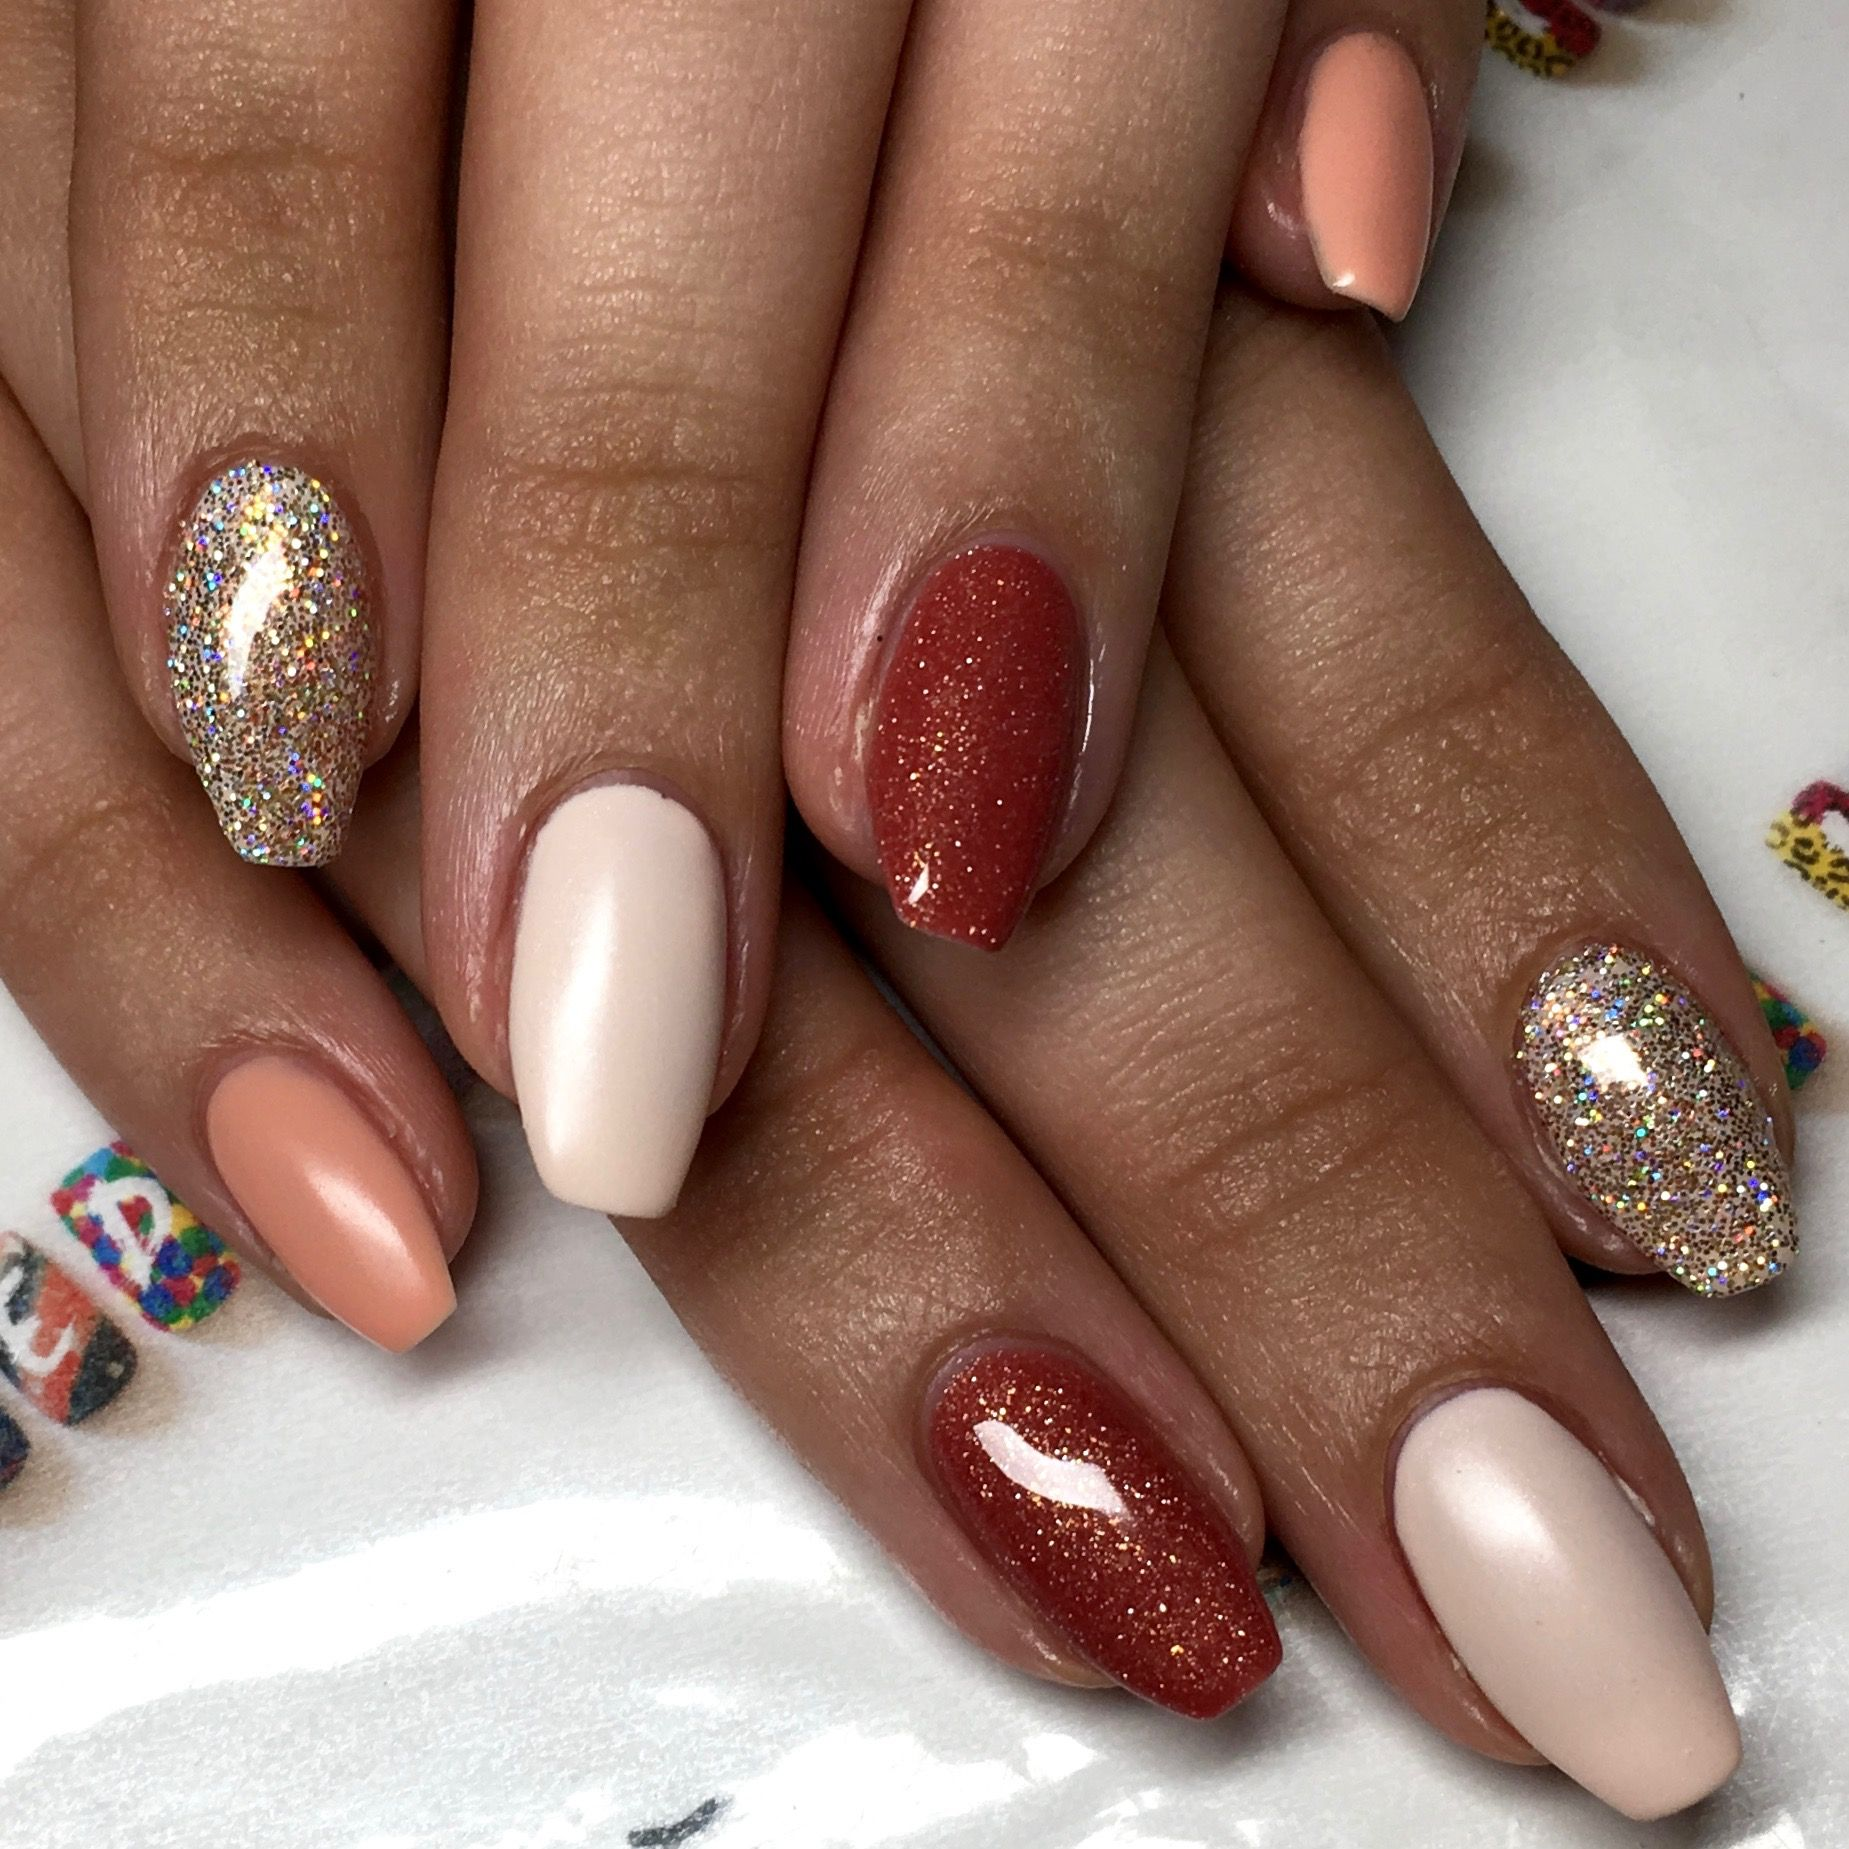 nude natural gel polish coffin nails with magpie glitter nail art ...